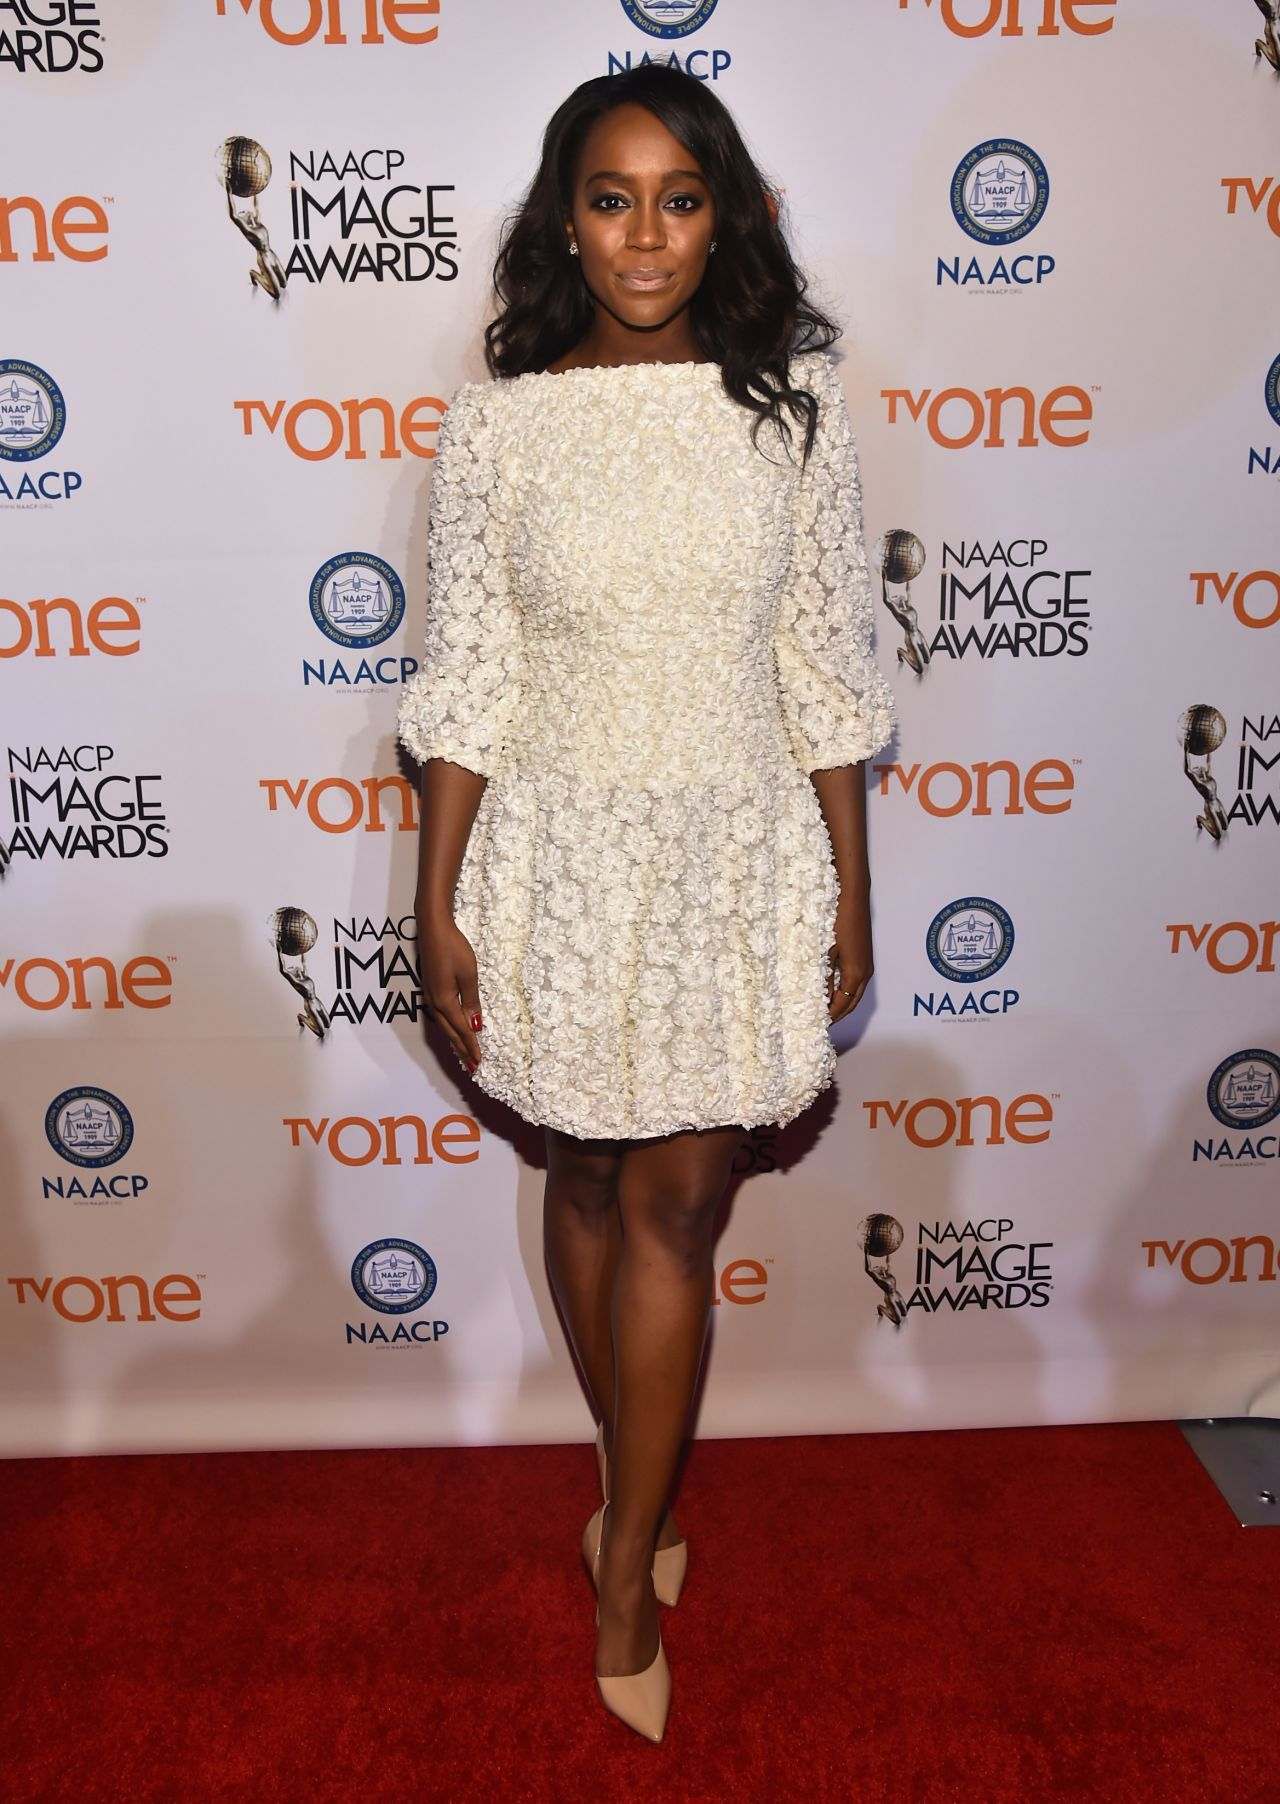 Aja Naomi King at 2015 NAACP Image Awards